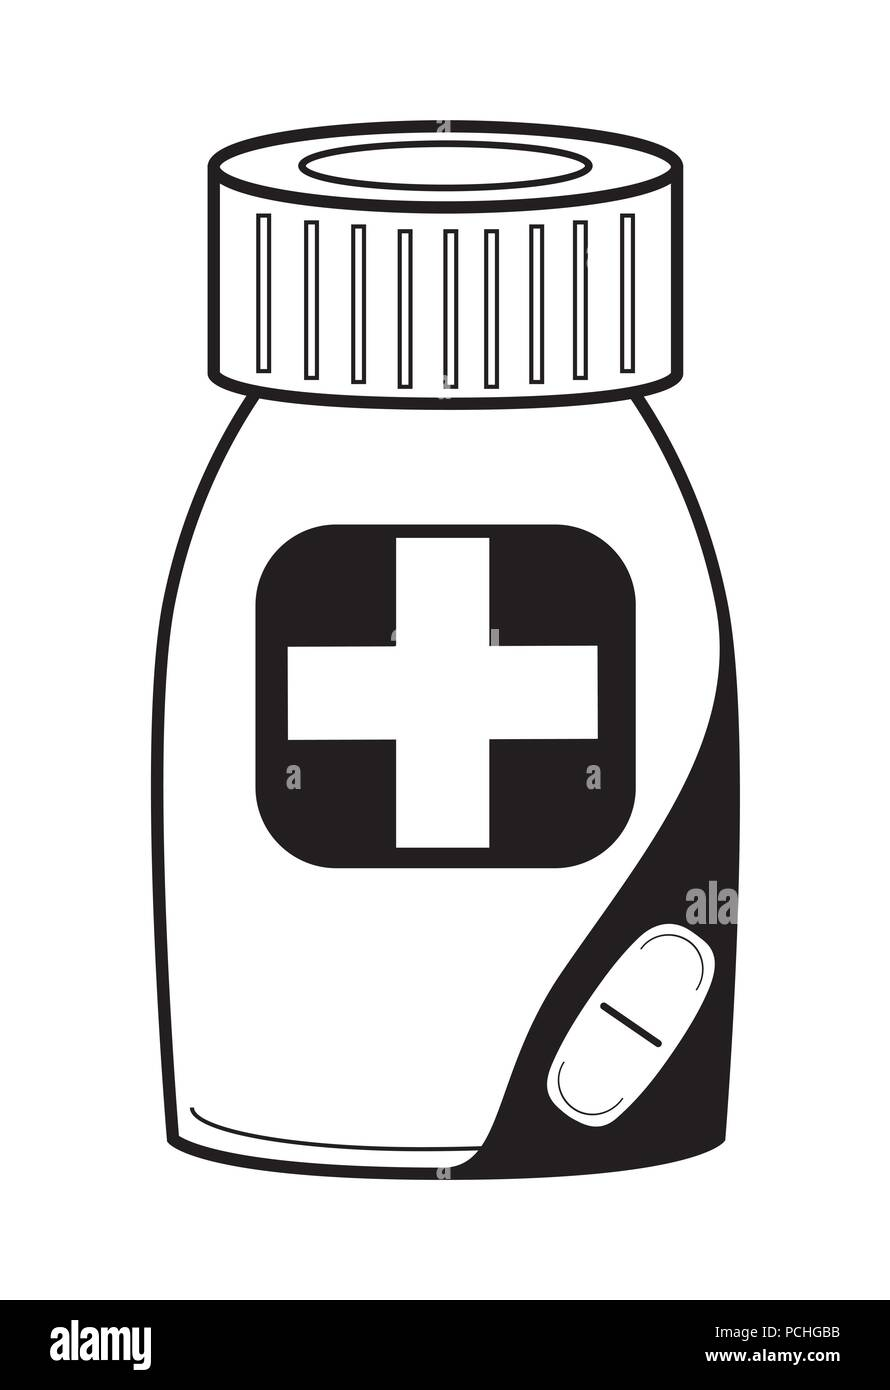 Medicine bottle icon - Stock Image